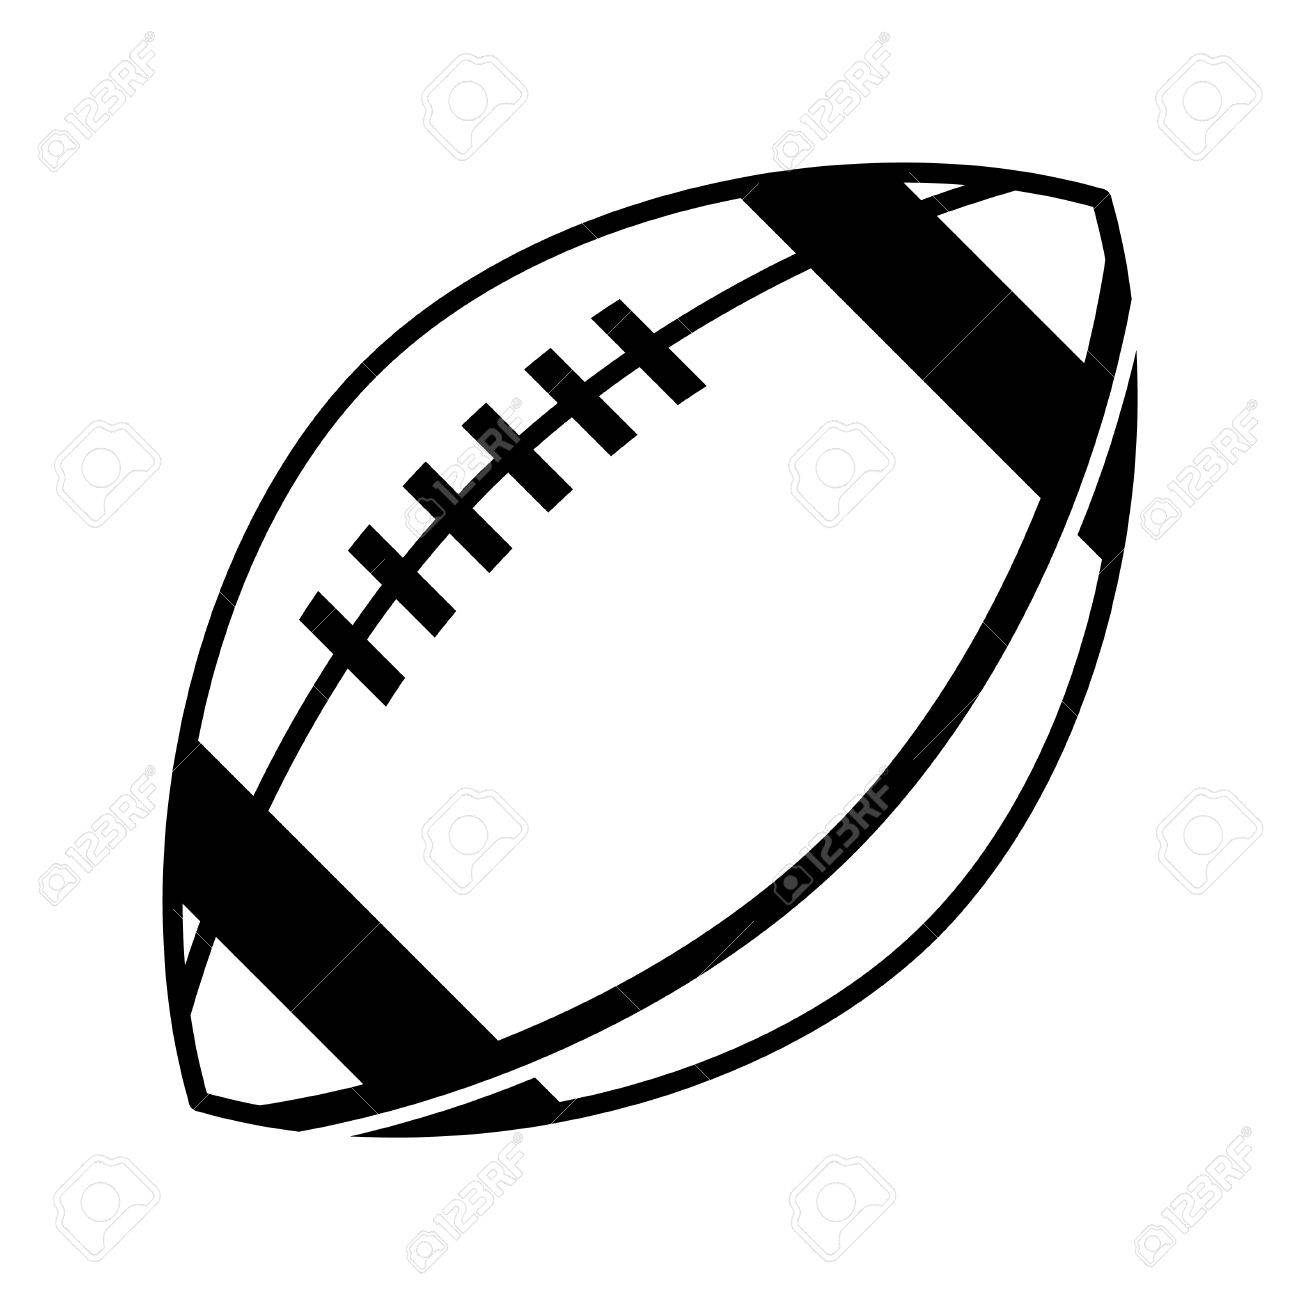 football vector icon royalty free cliparts vectors and stock